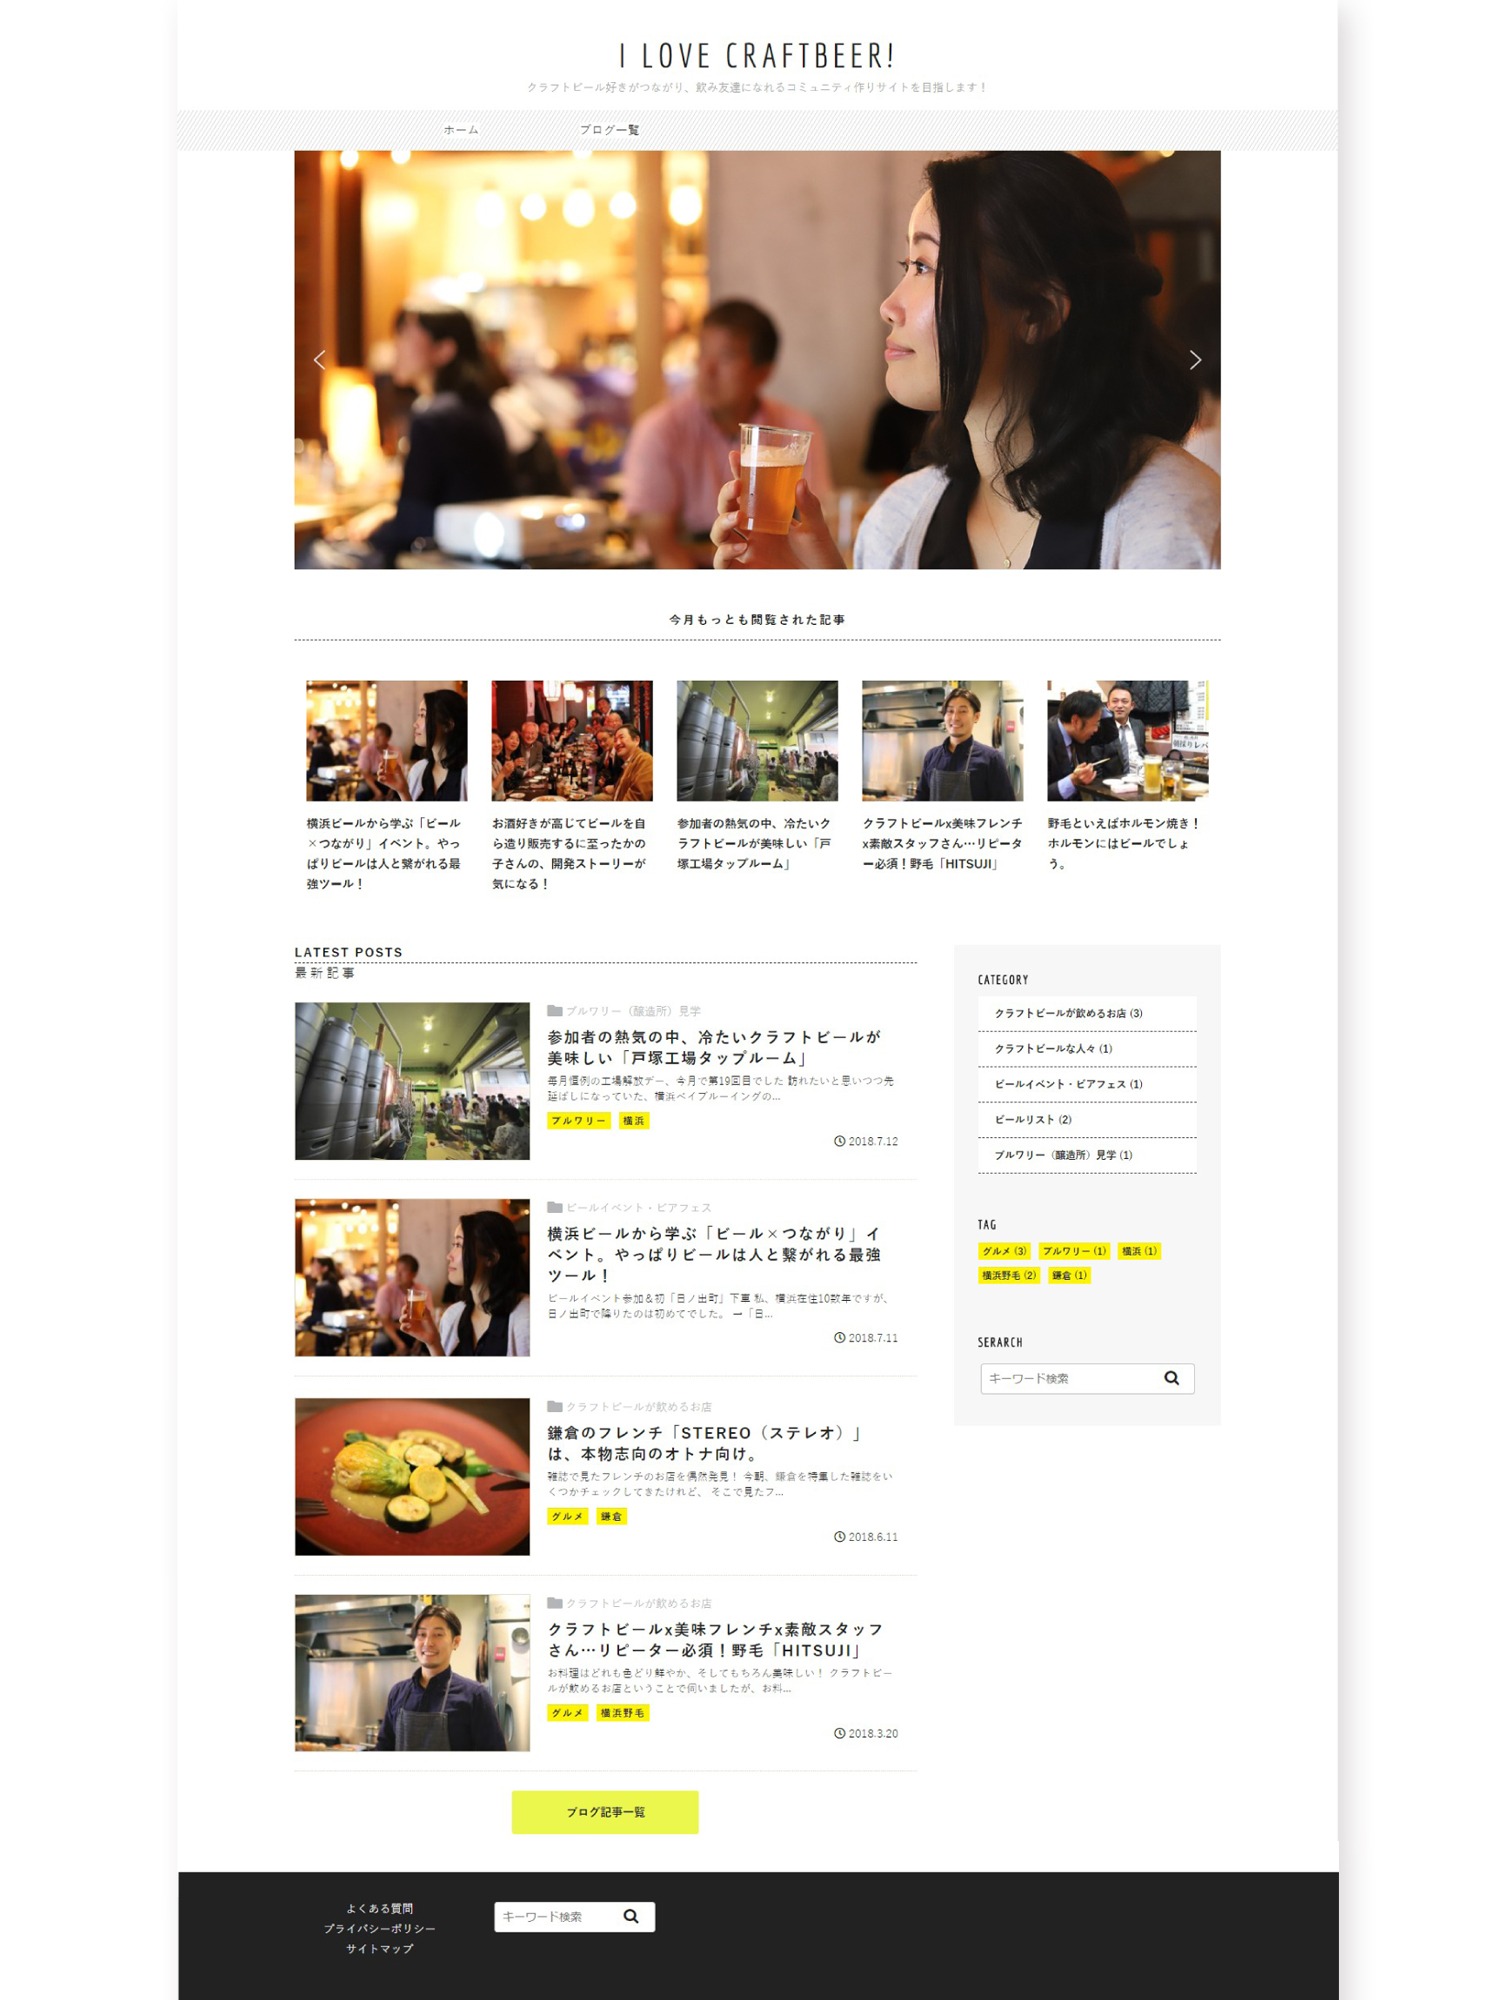 I LOVE CRAFT BEER!Webサイト制作